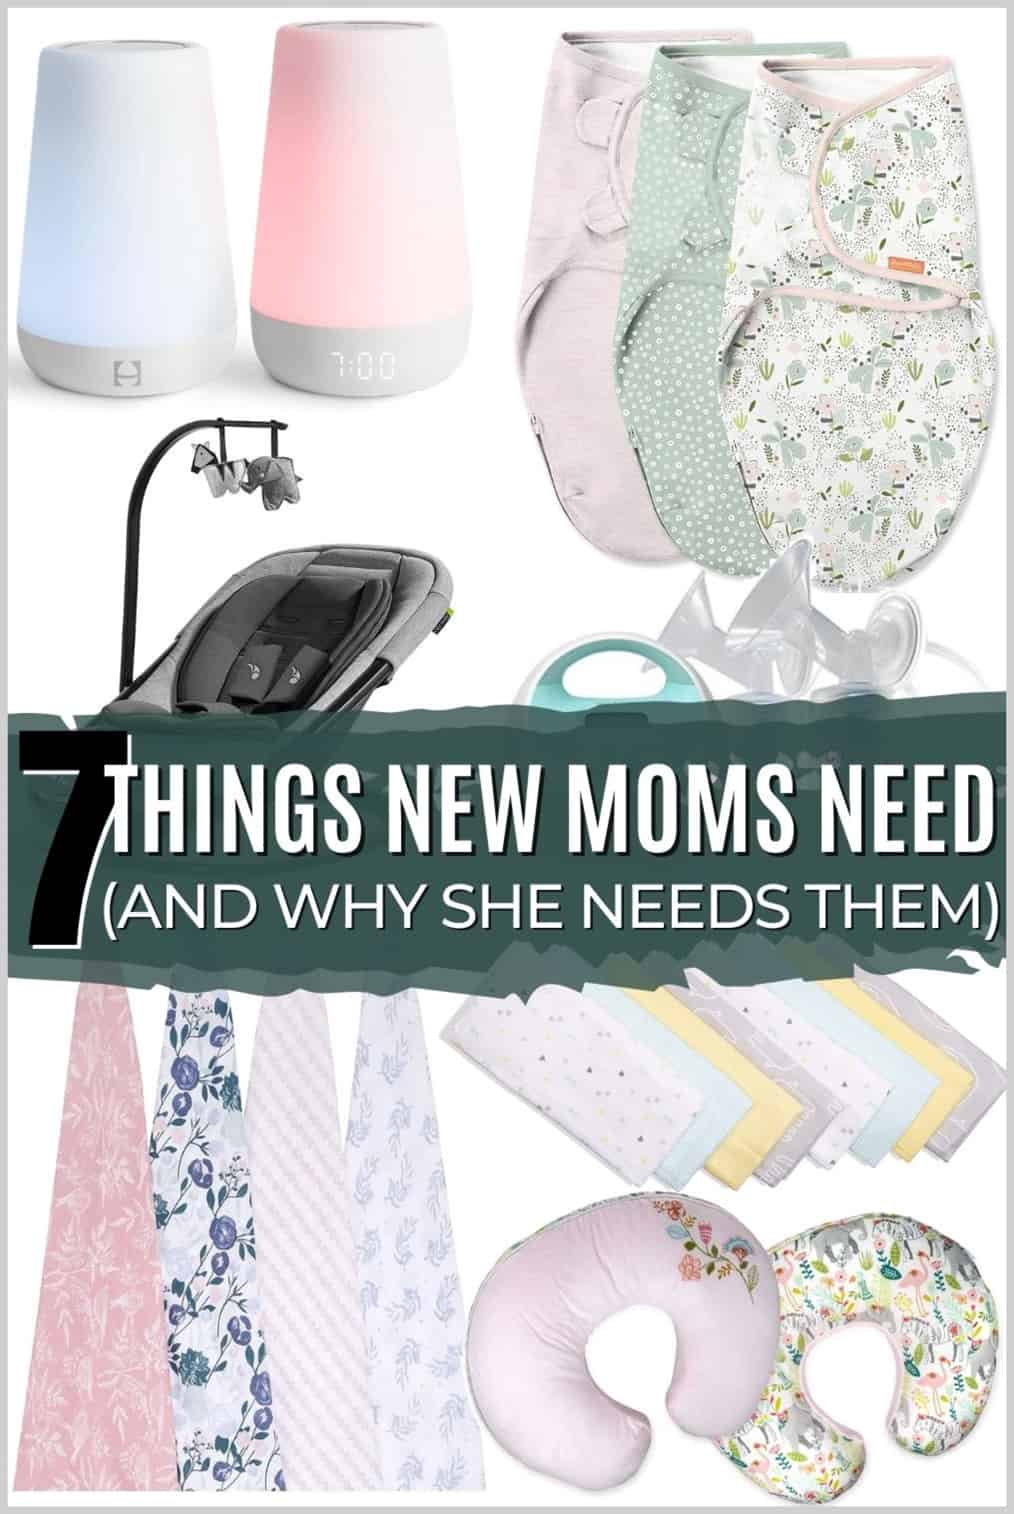 Things new moms need with swaddle blankets, baby chair, white noise machine, nursing pillows and burp cloths.